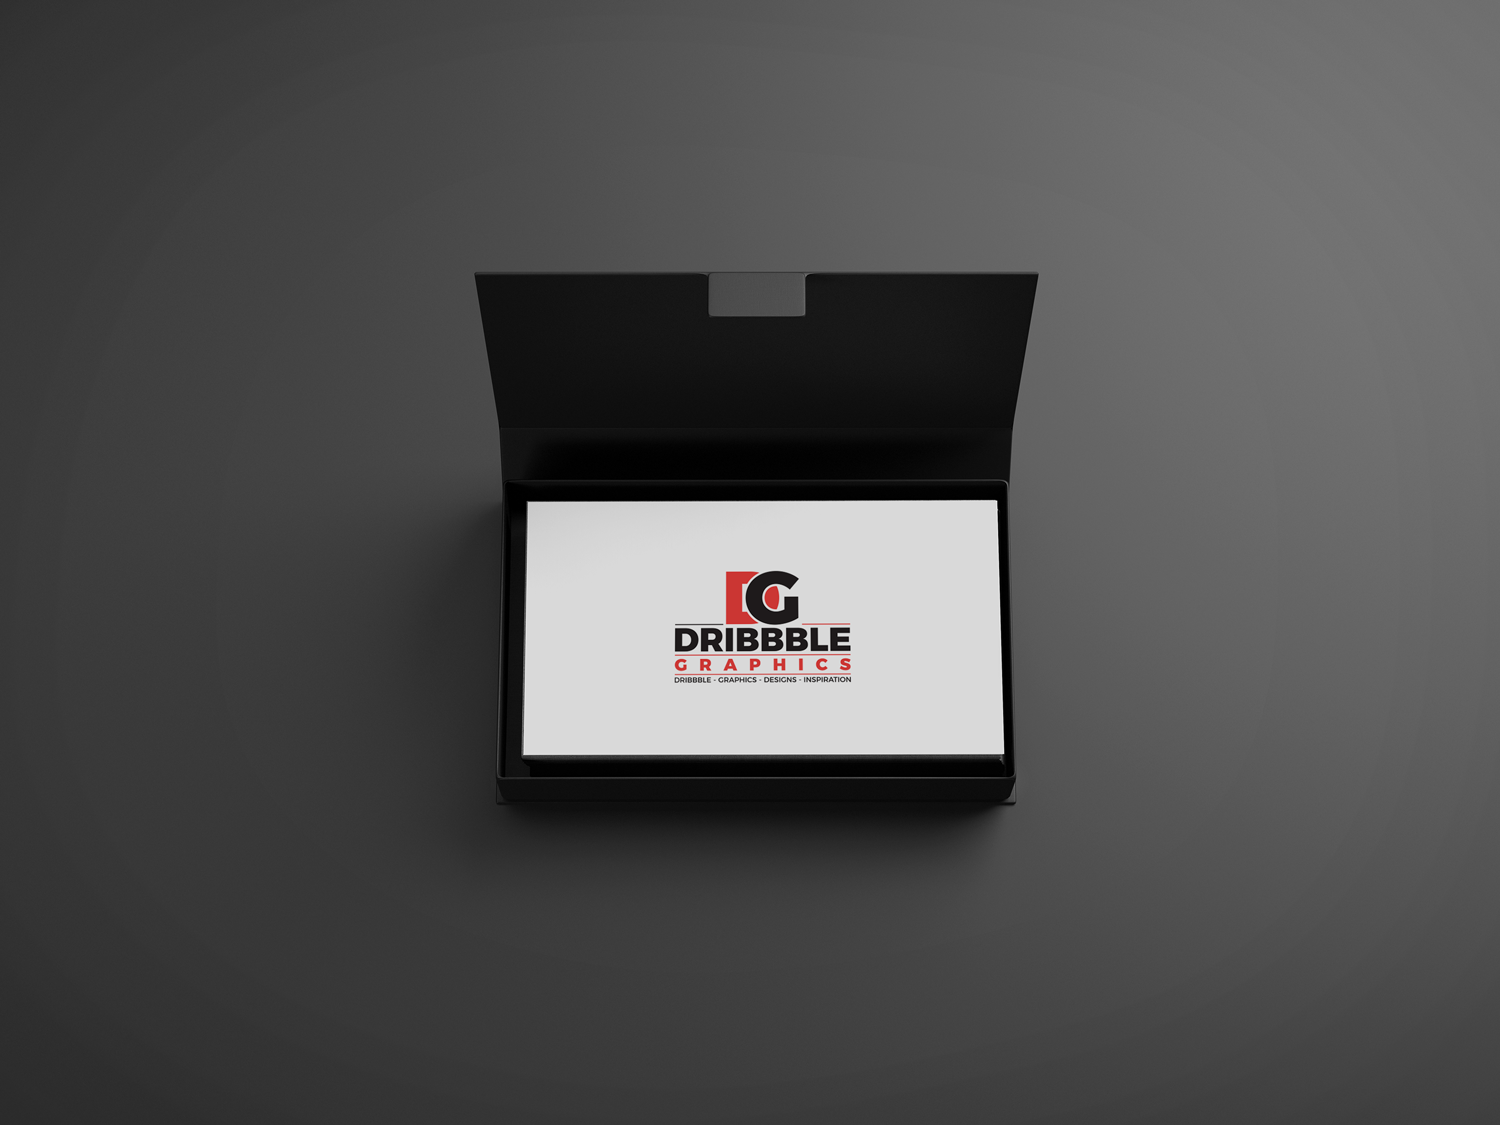 Download Free Business Cards In Box Mock Up 3 29 Mb Dribbble Graphics Free Photoshop Mockup Psd Business Card Box